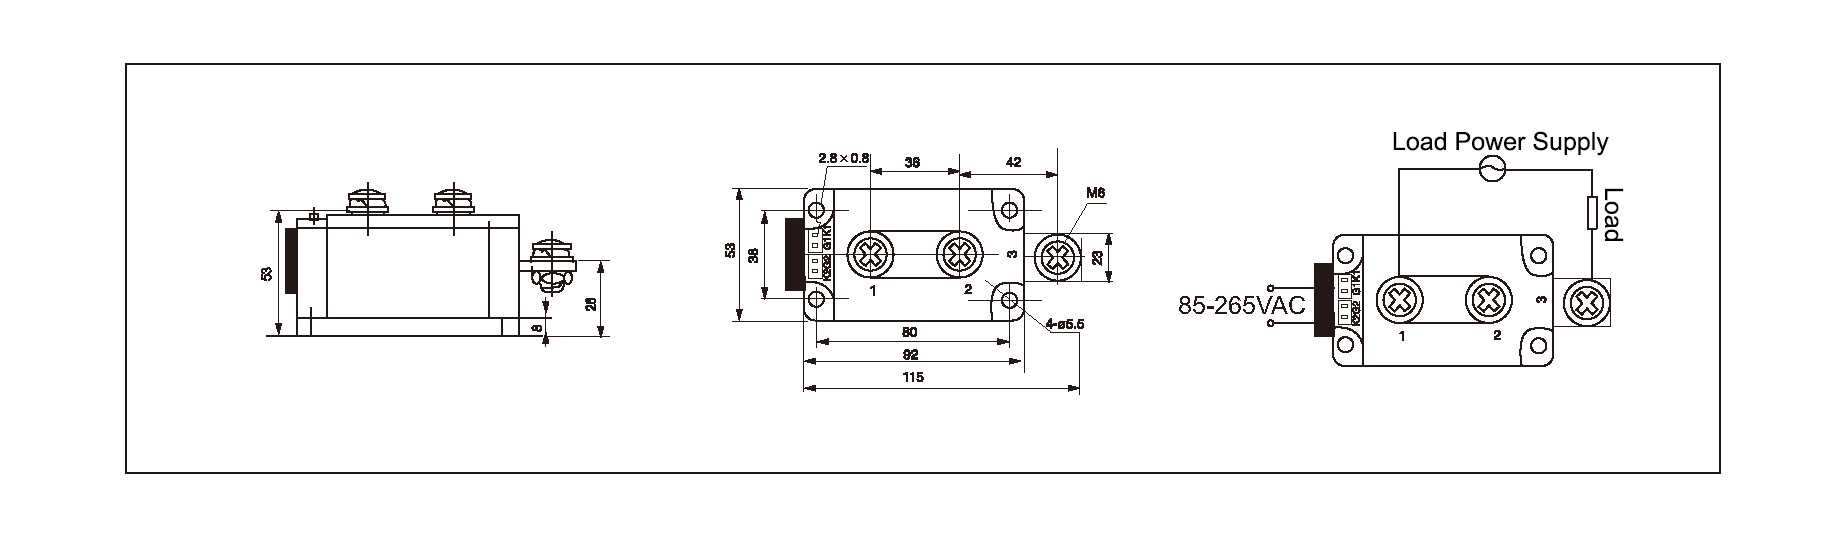 Dimensions,_circuit_wiring_diagram,_industrial_AC_to_AC_solid_state_relay_schematic_of_mager_MGR_AH12400Z_industrial_single_phase_AC_to_AC_solid_state_relay│HUIMULTD